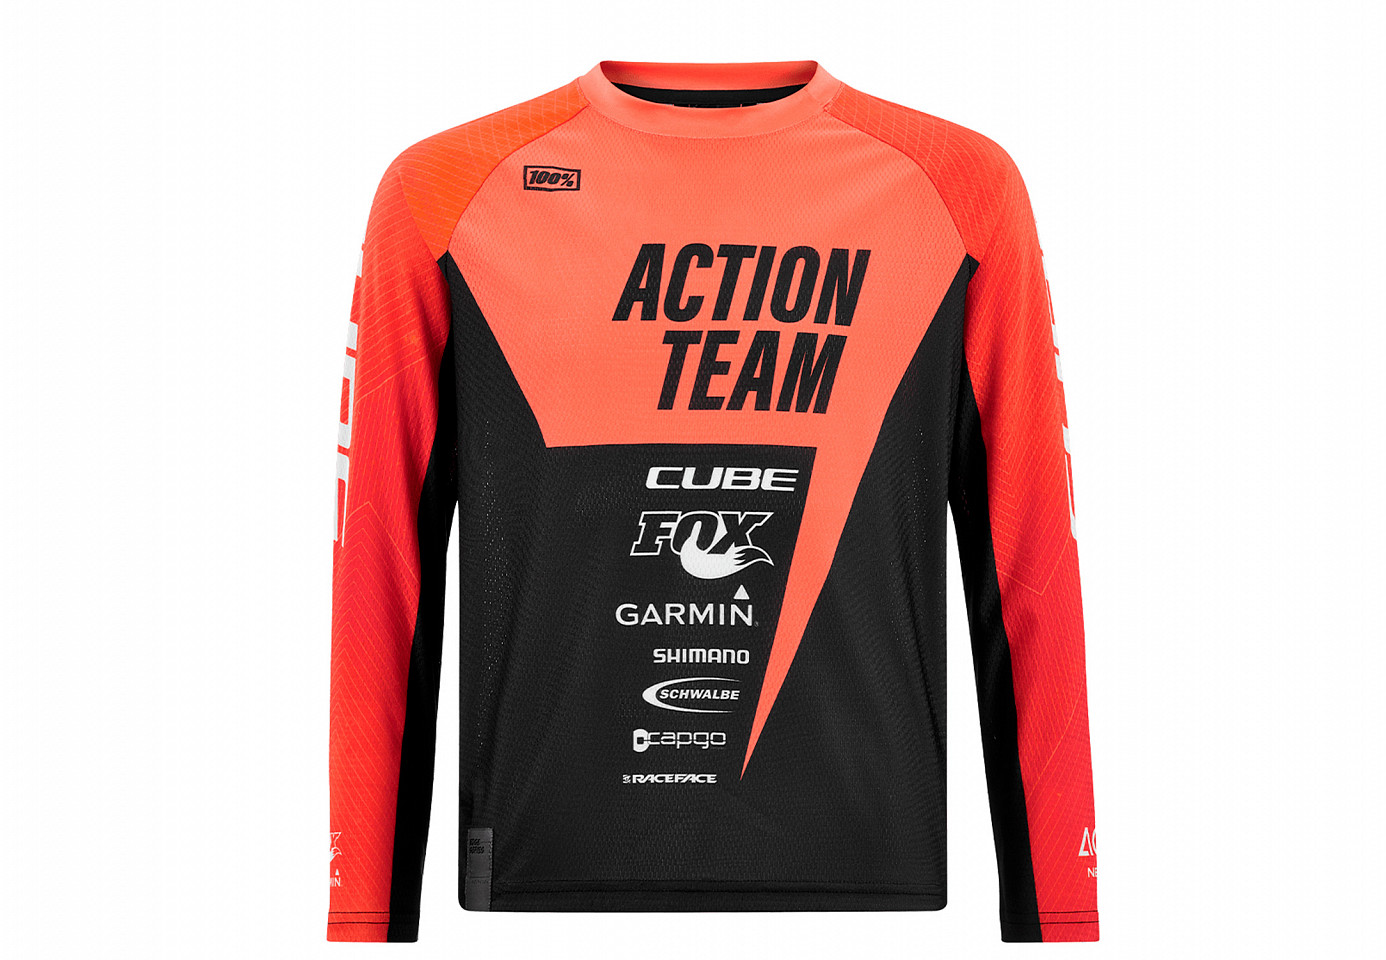 CUBE JUNIOR JERSEY L/S X ACTIONTEAM